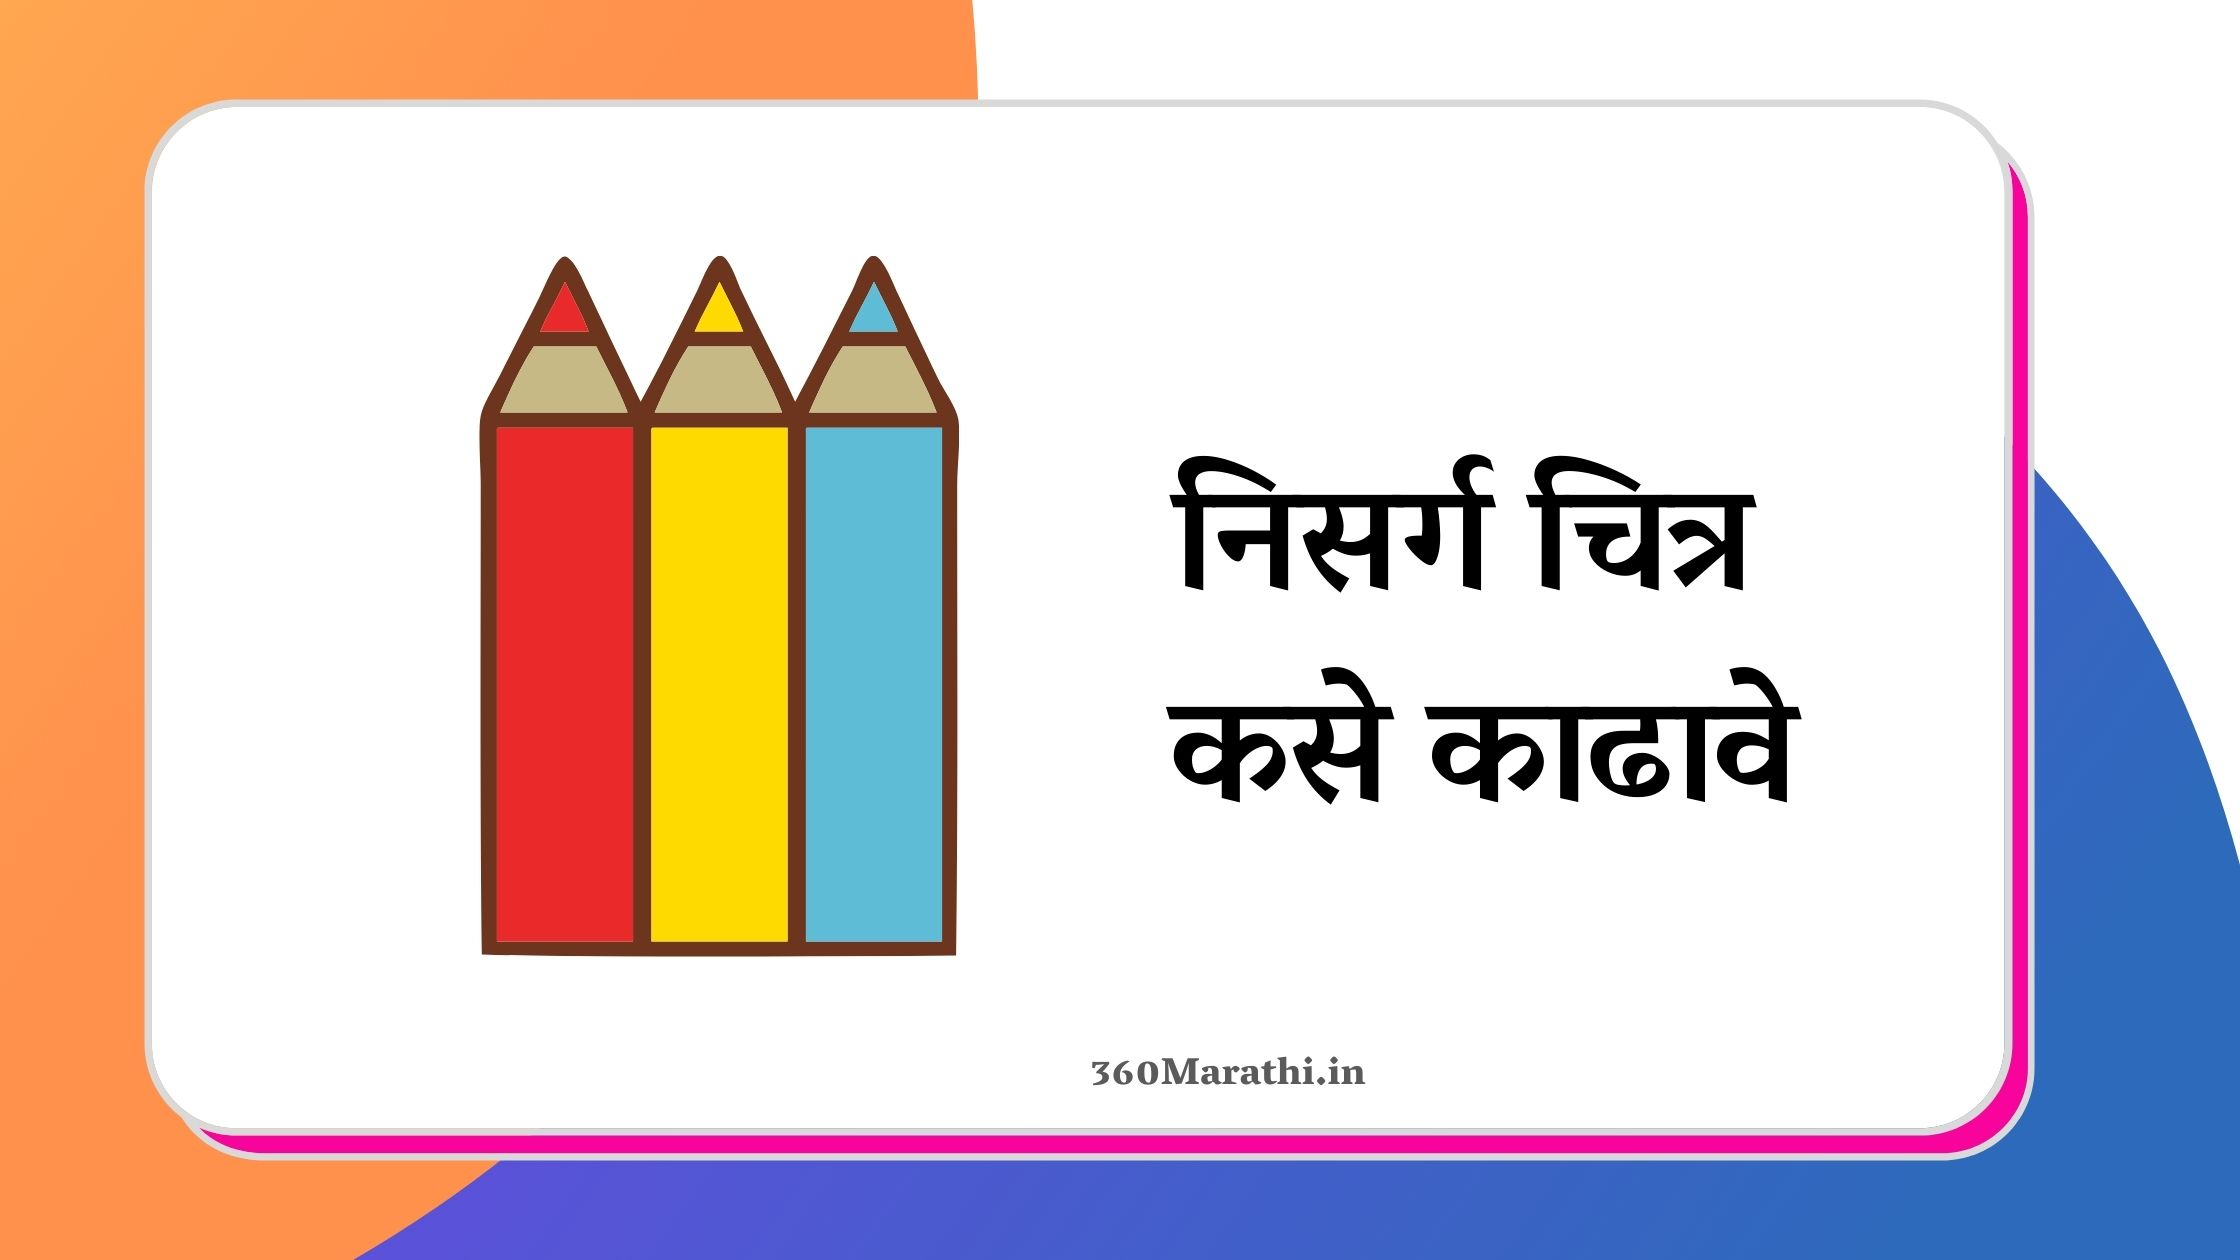 निसर्ग चित्र कसे काढावे | How to Draw Nature Drawing in Marathi